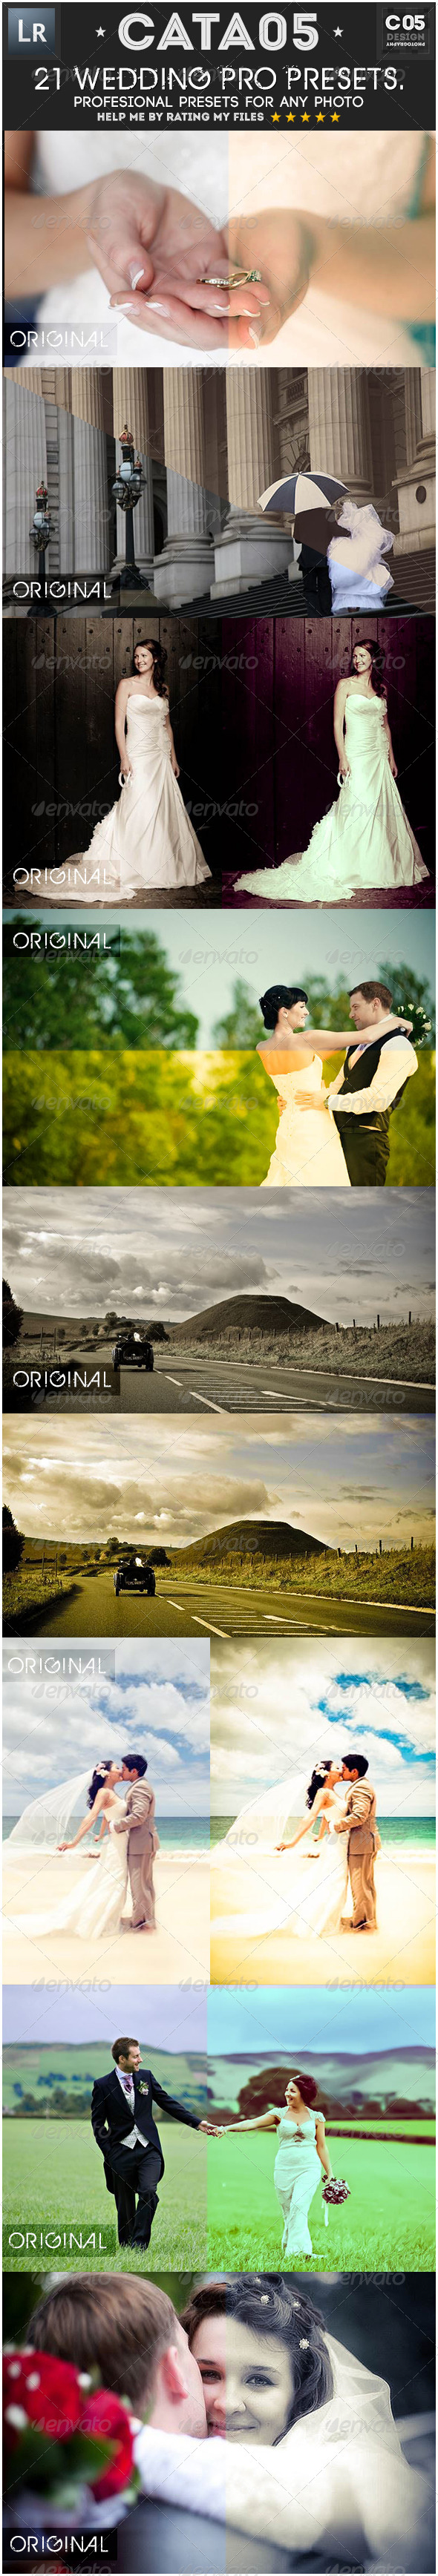 21 Wedding Pro Presets - Lightroom Presets Add-ons